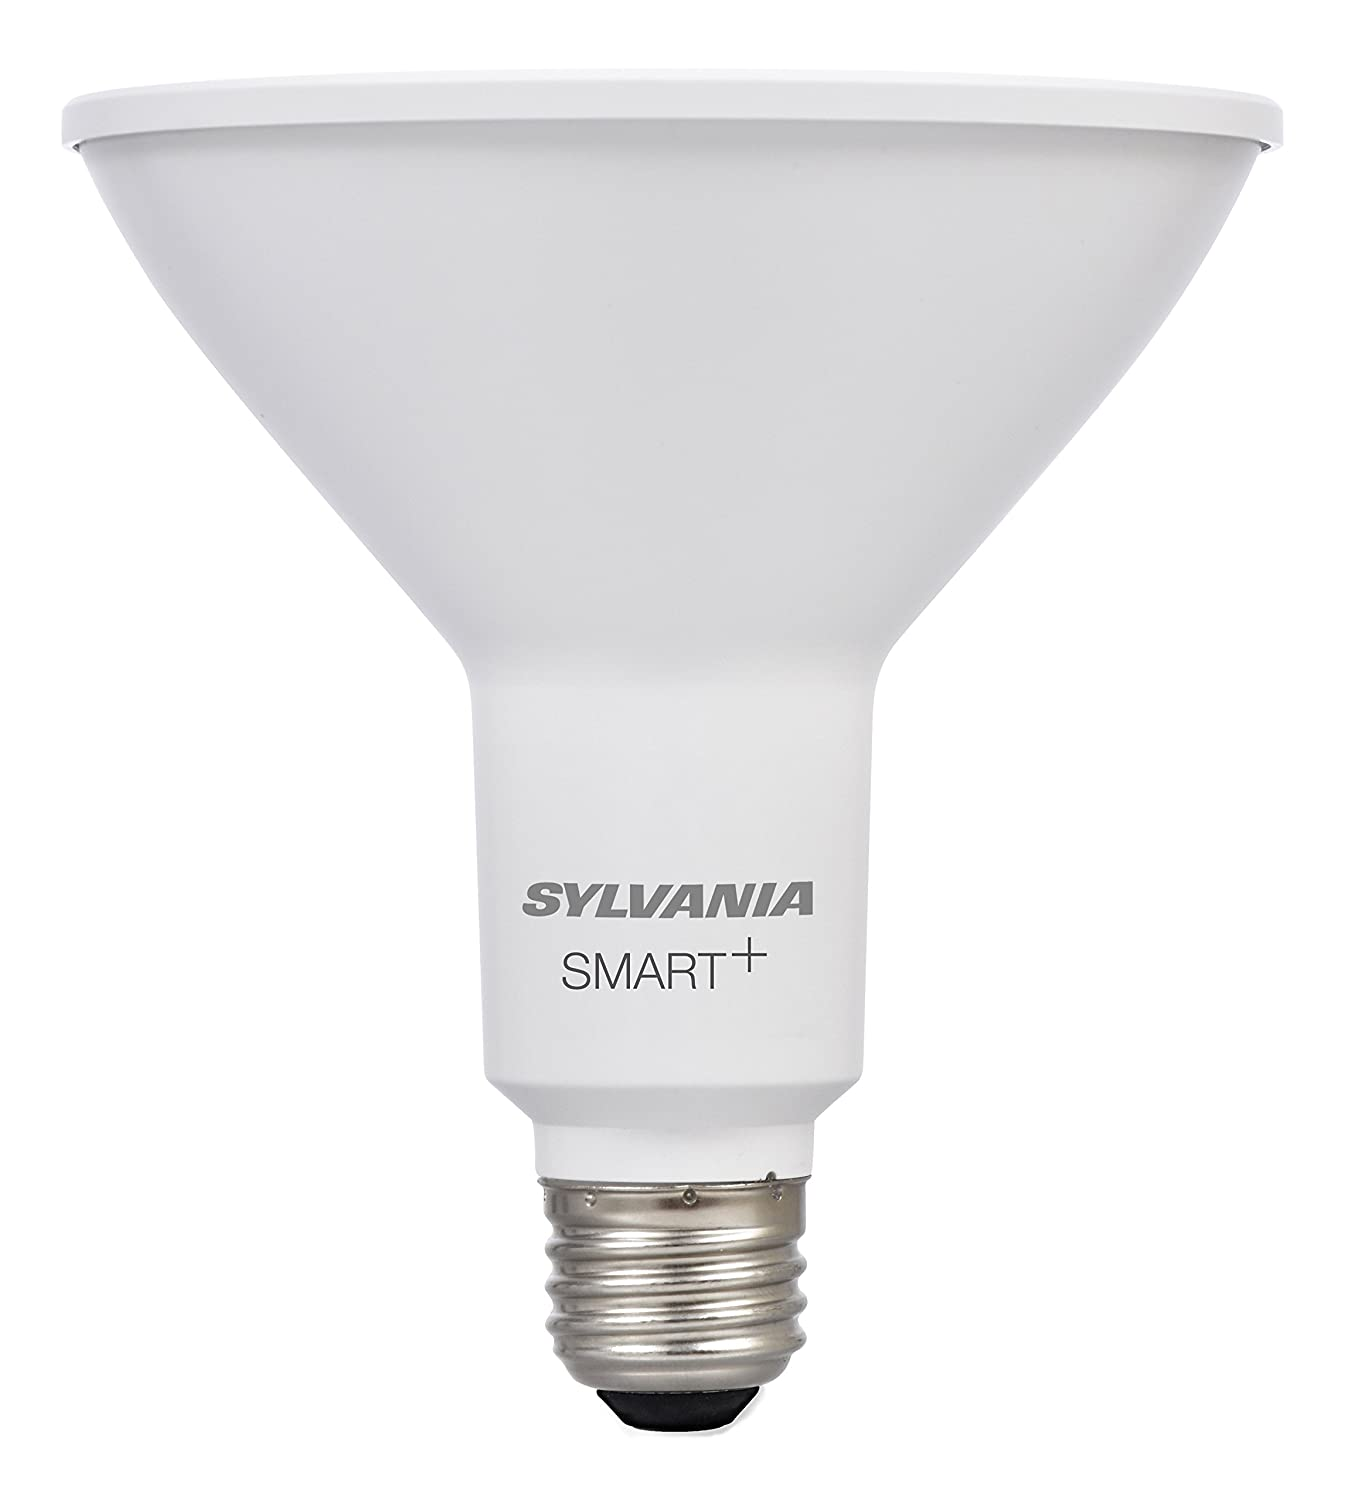 Sylvania Smart Home 74580 Dim Sylvania Smart+ LED Light Bulb, PAR38 Dimmable White, 60W Equivalent, Works with SmartThings and Alexa, 10 Year Series Soft